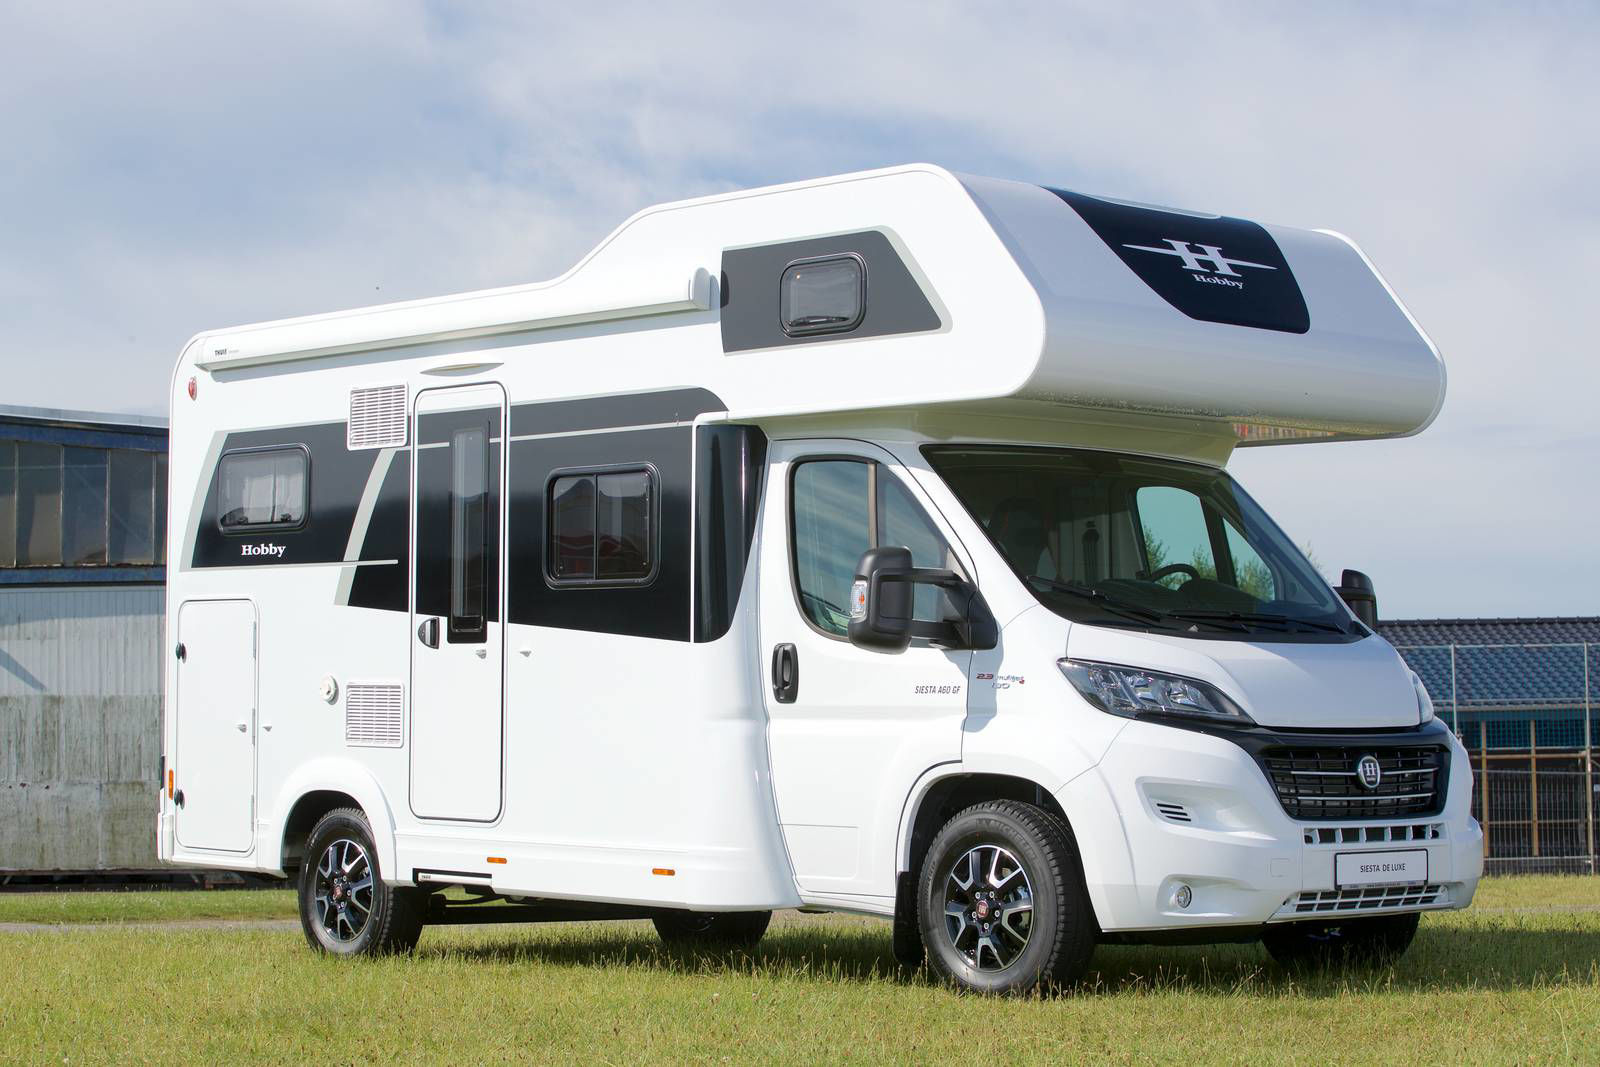 Picture for category Motorhomes